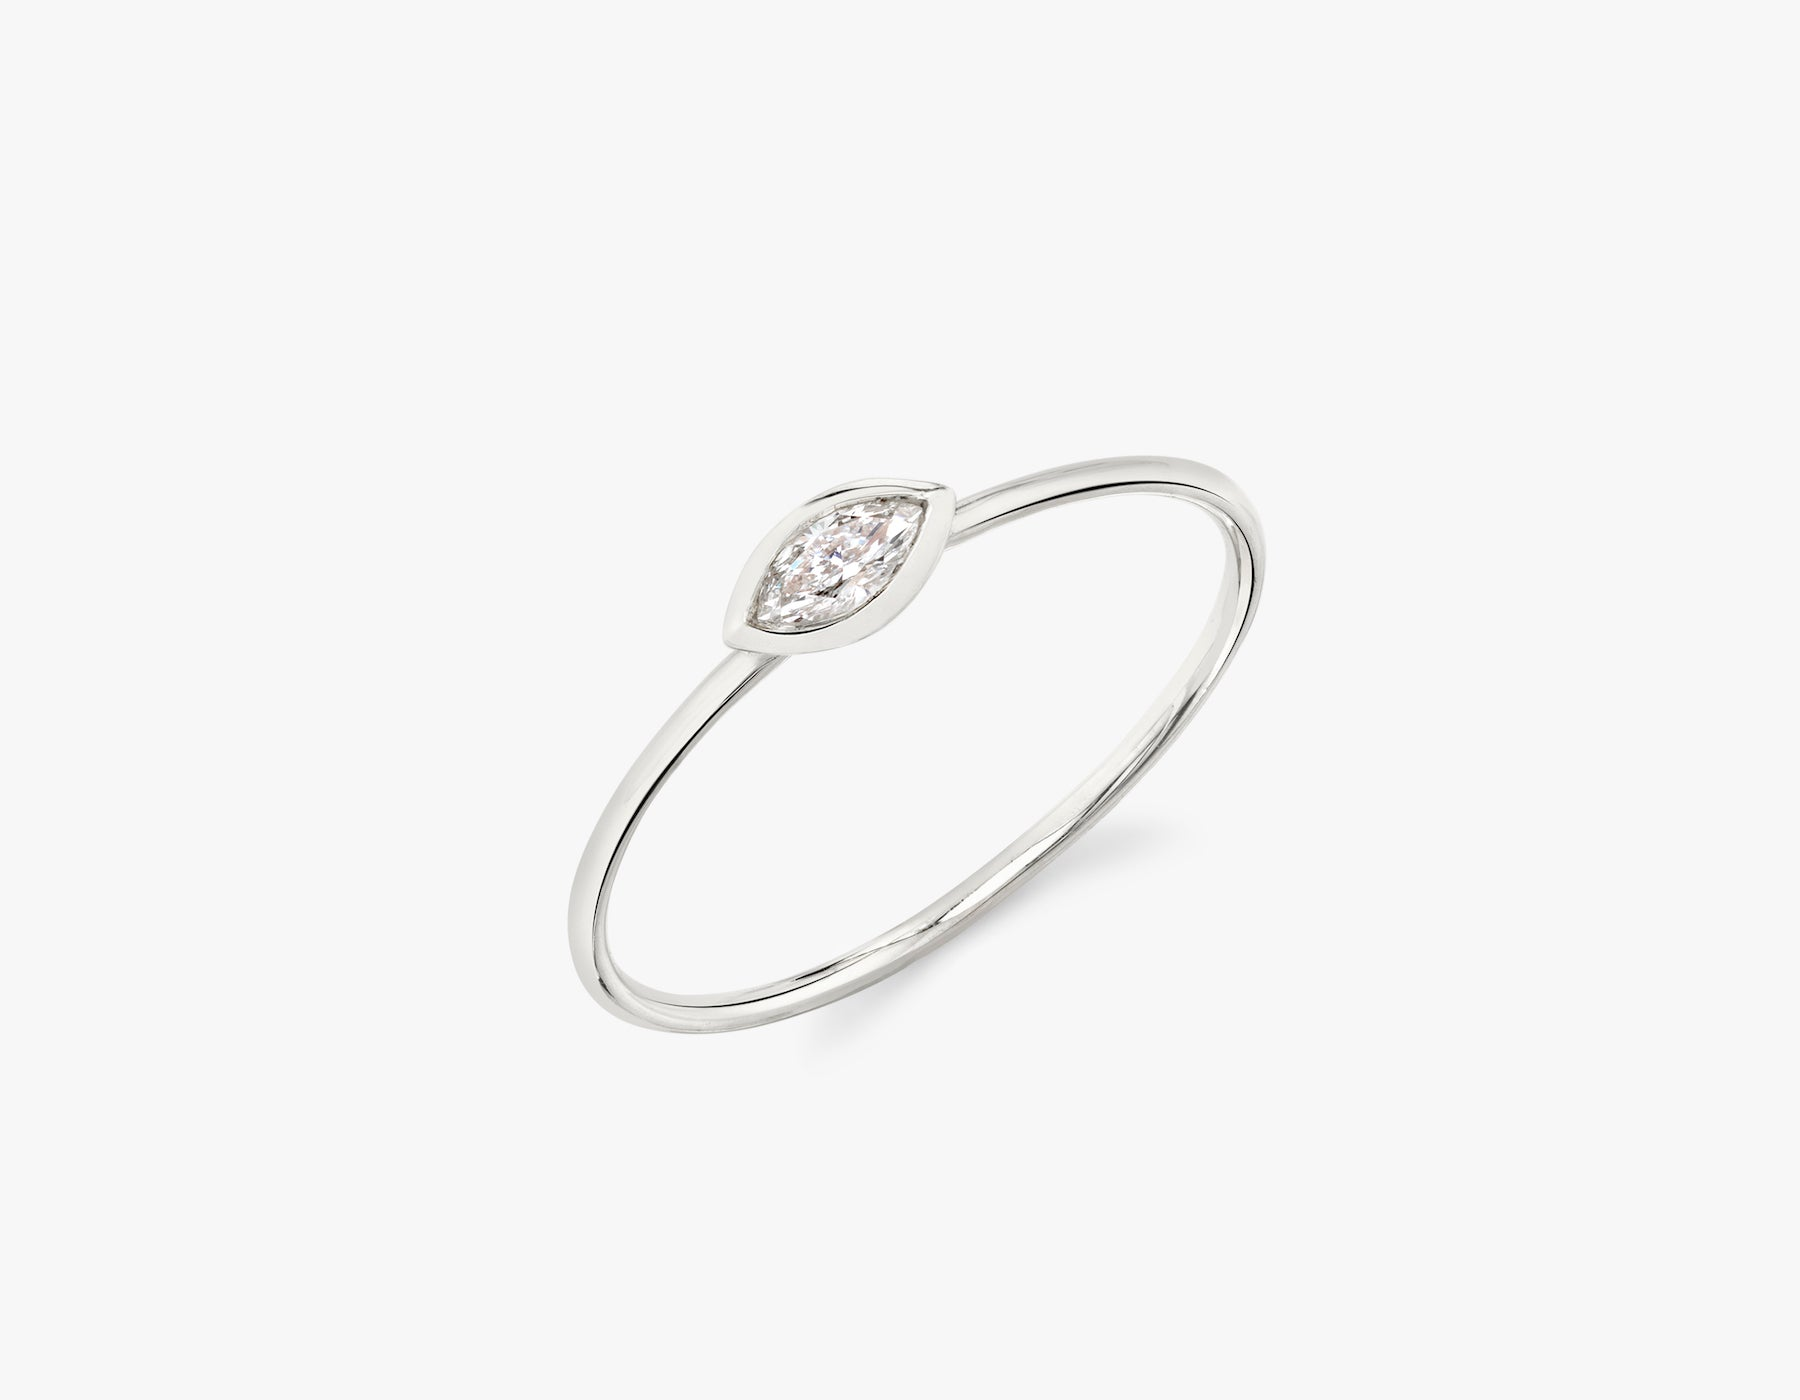 Vrai simple minimalist Marquise Diamond Bezel Ring, 14K White Gold